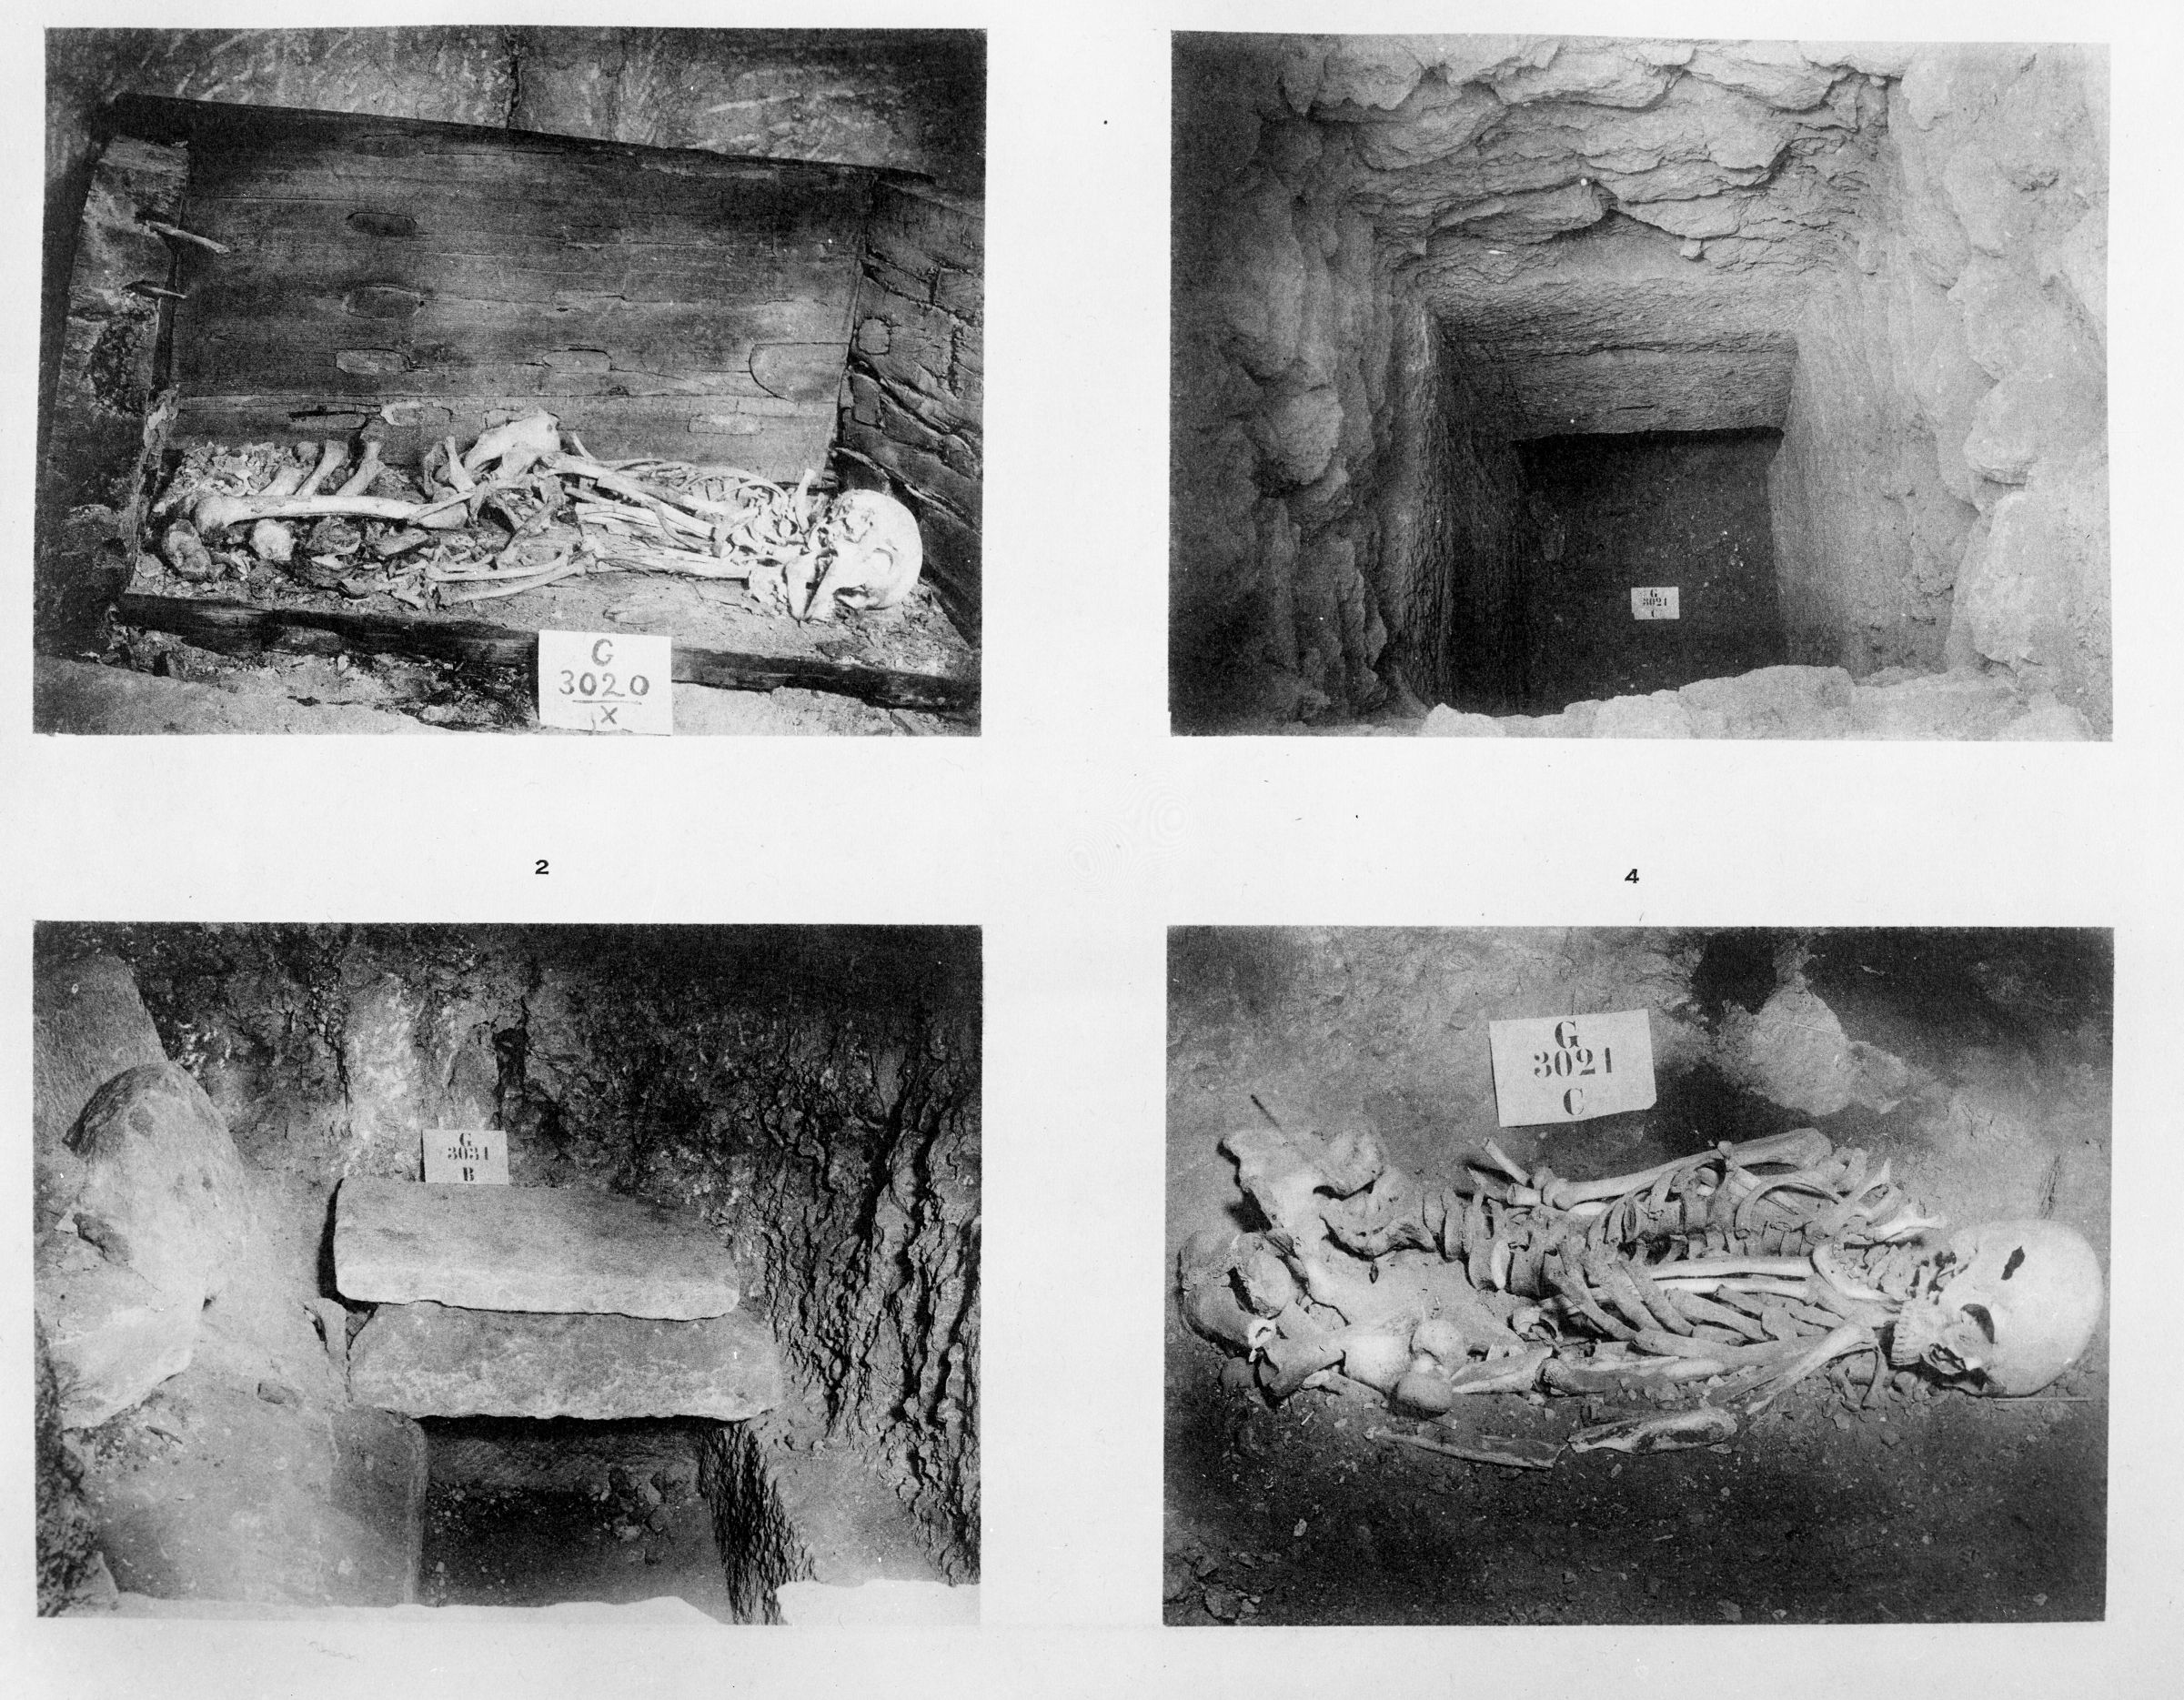 Western Cemetery: Site: Giza; view: G 3020, G 3021, G 3031